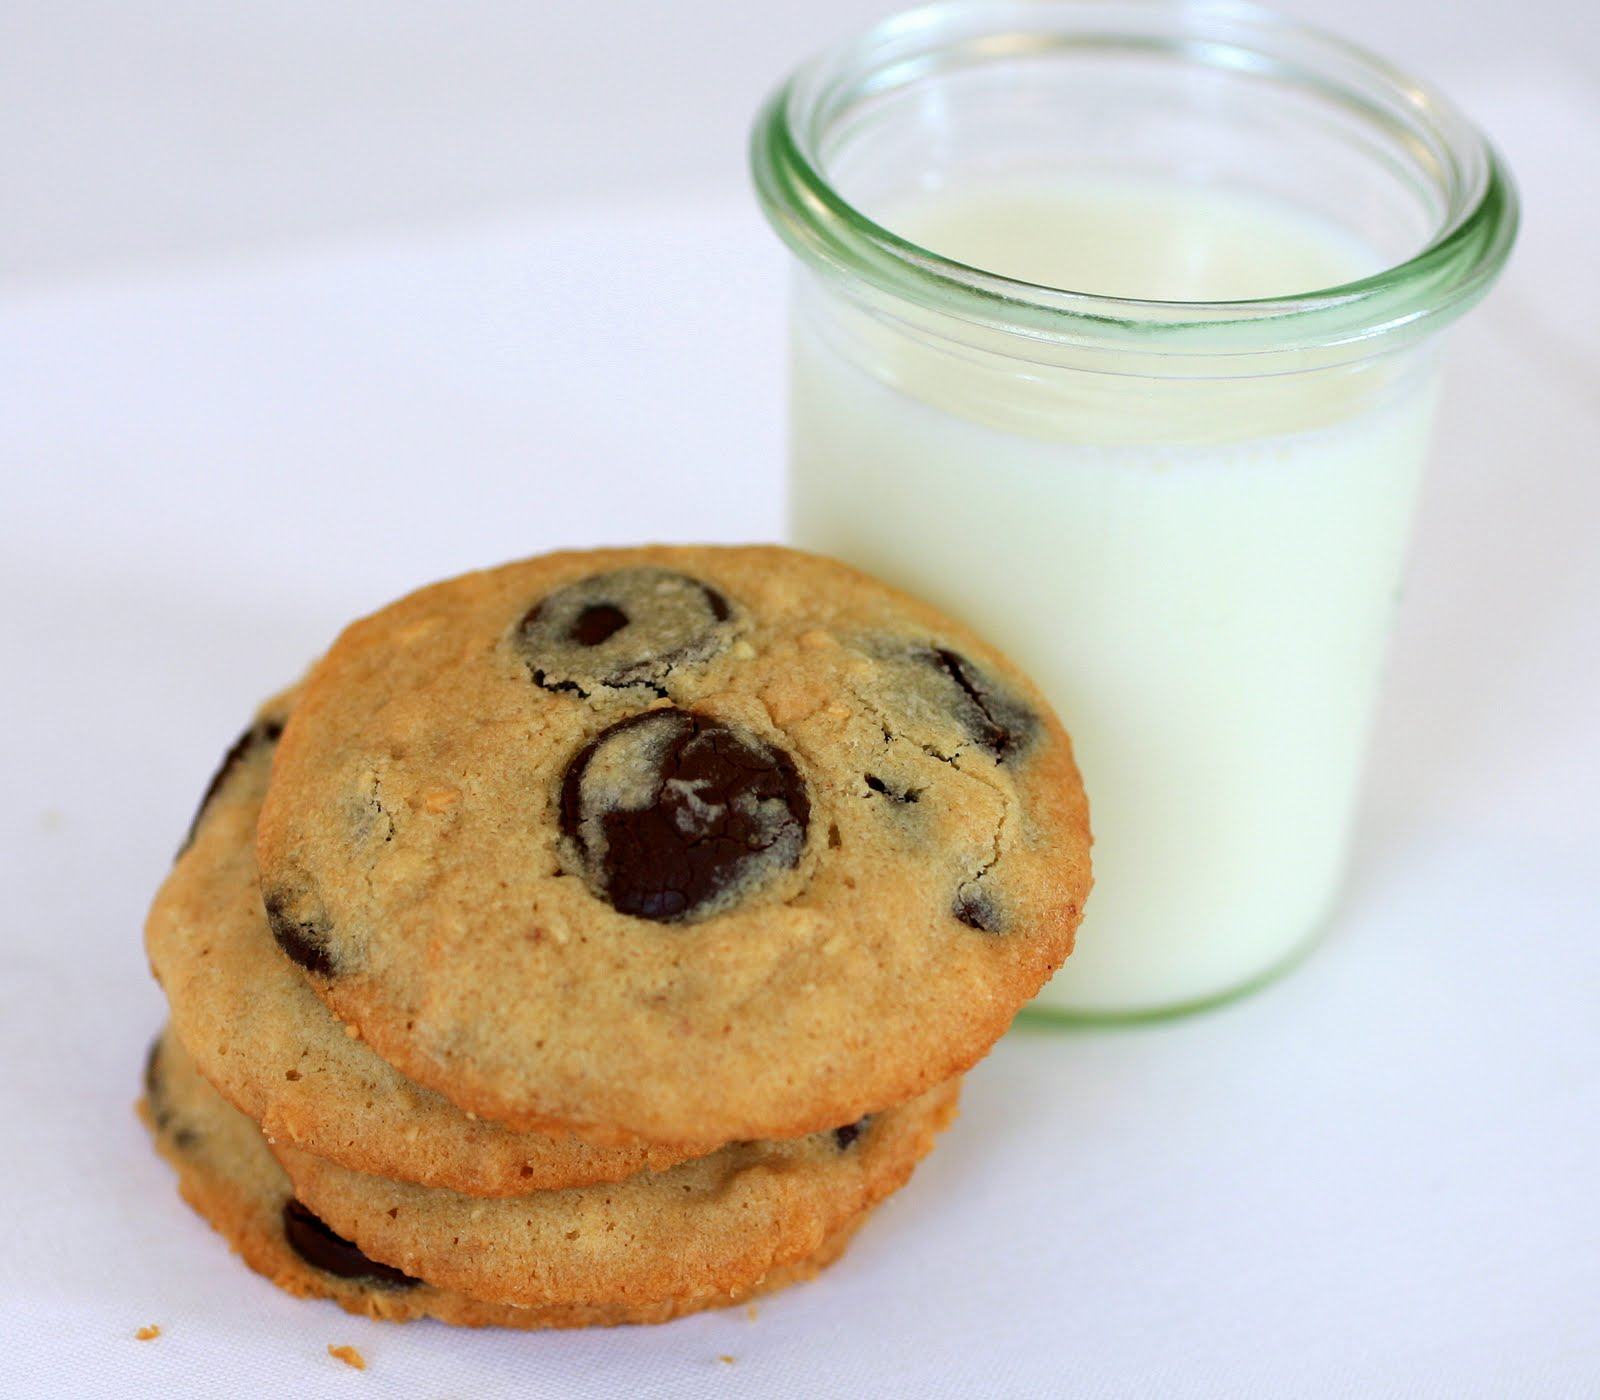 Tish Boyle Sweet Dreams: Milk and Cookies from a Master